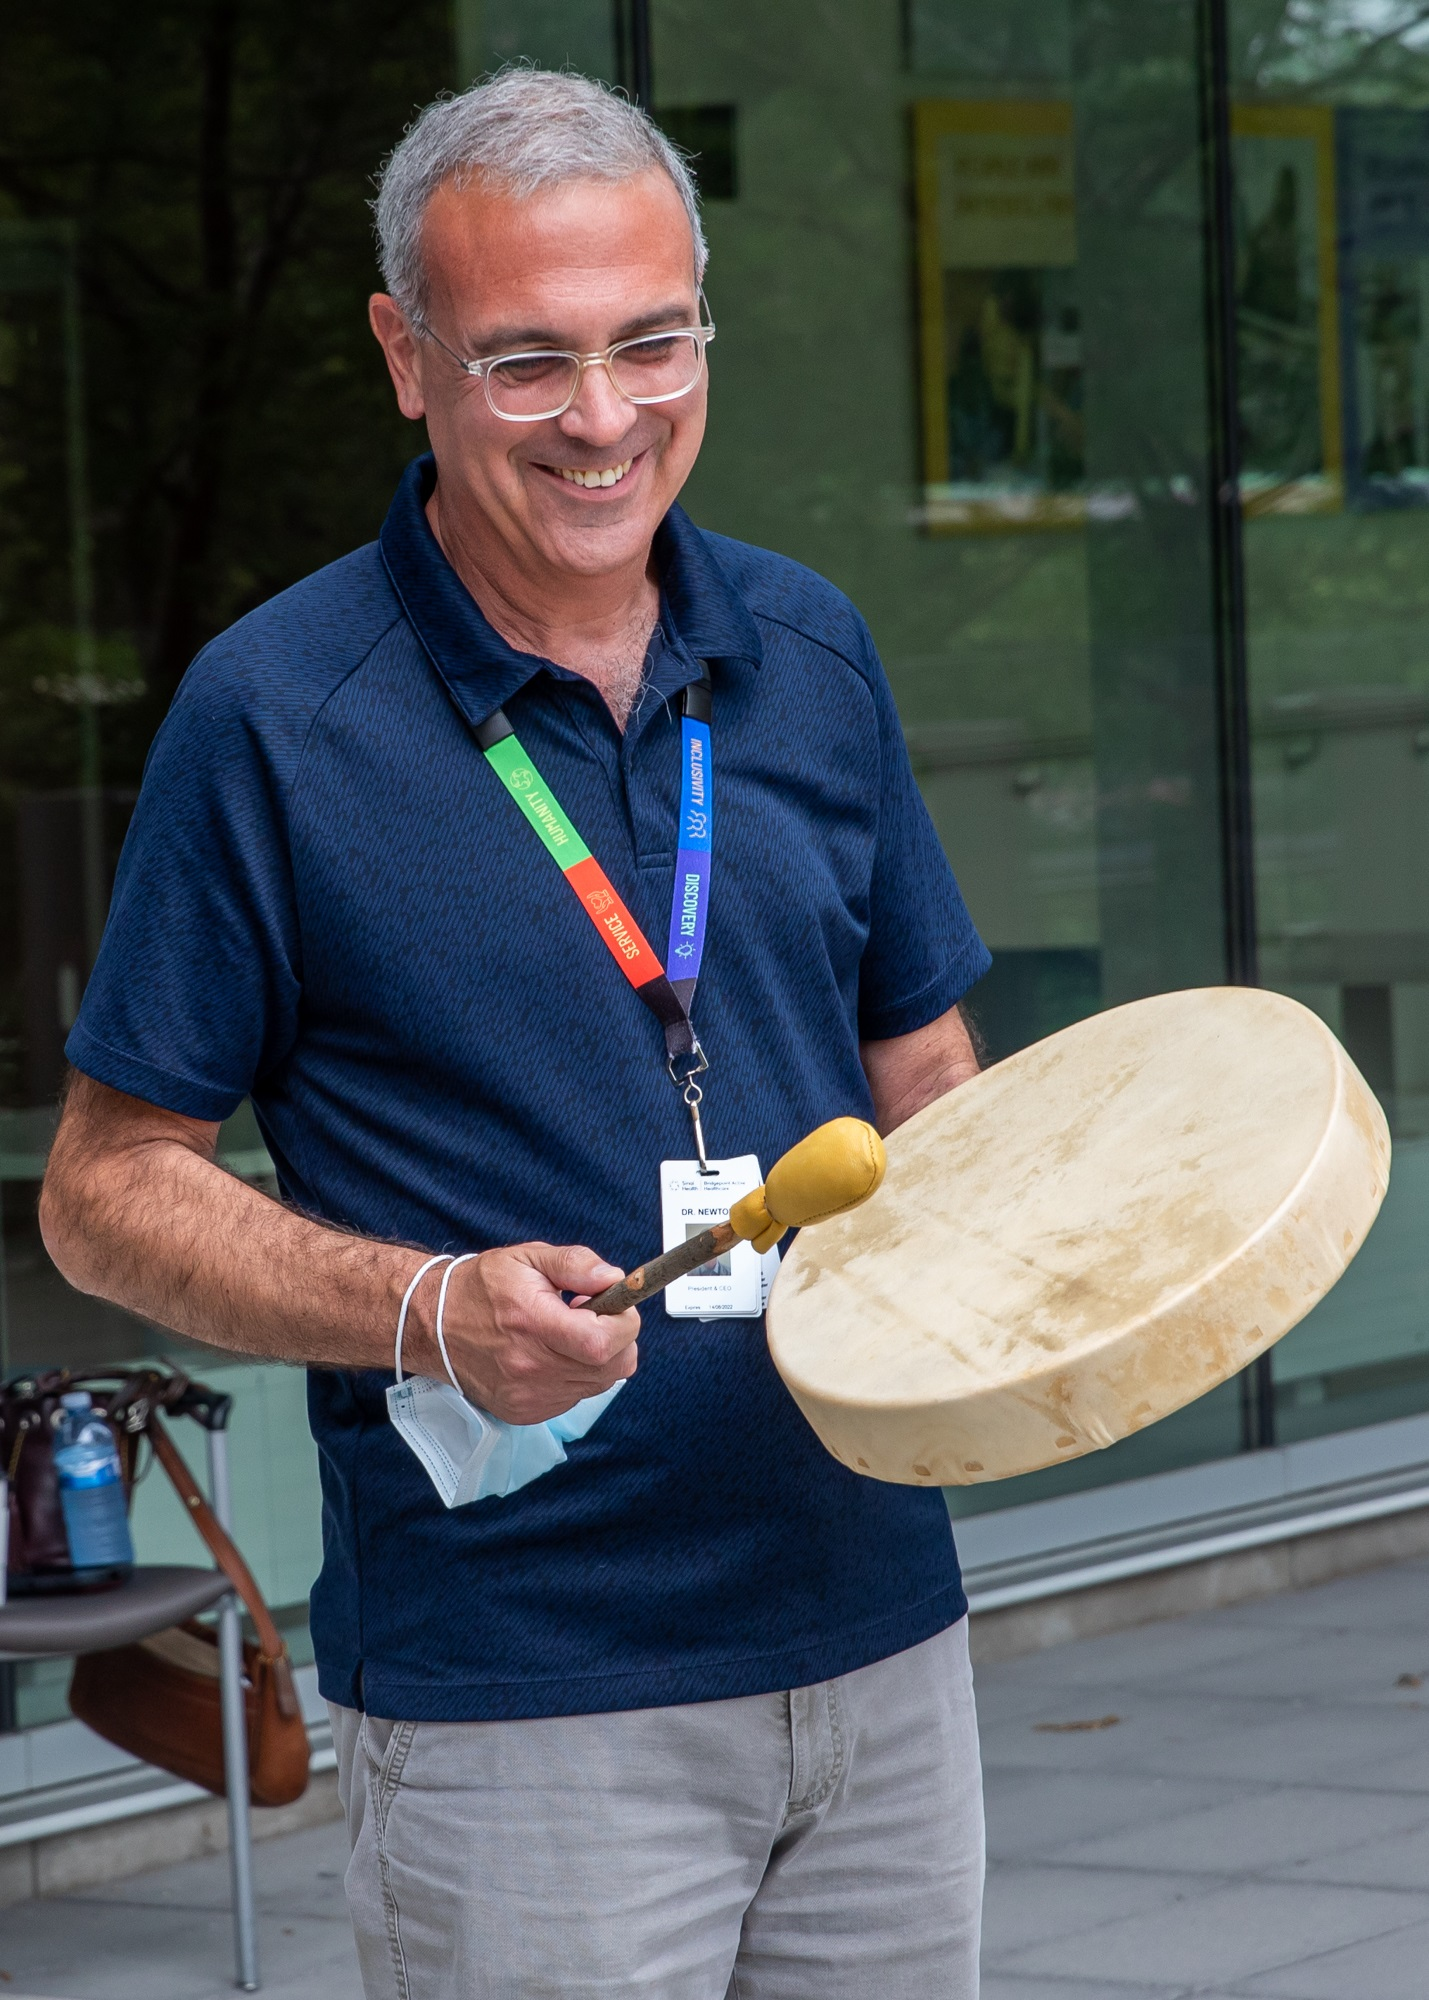 A man is smiling while holding and playing an Indigenous ceremonial drum